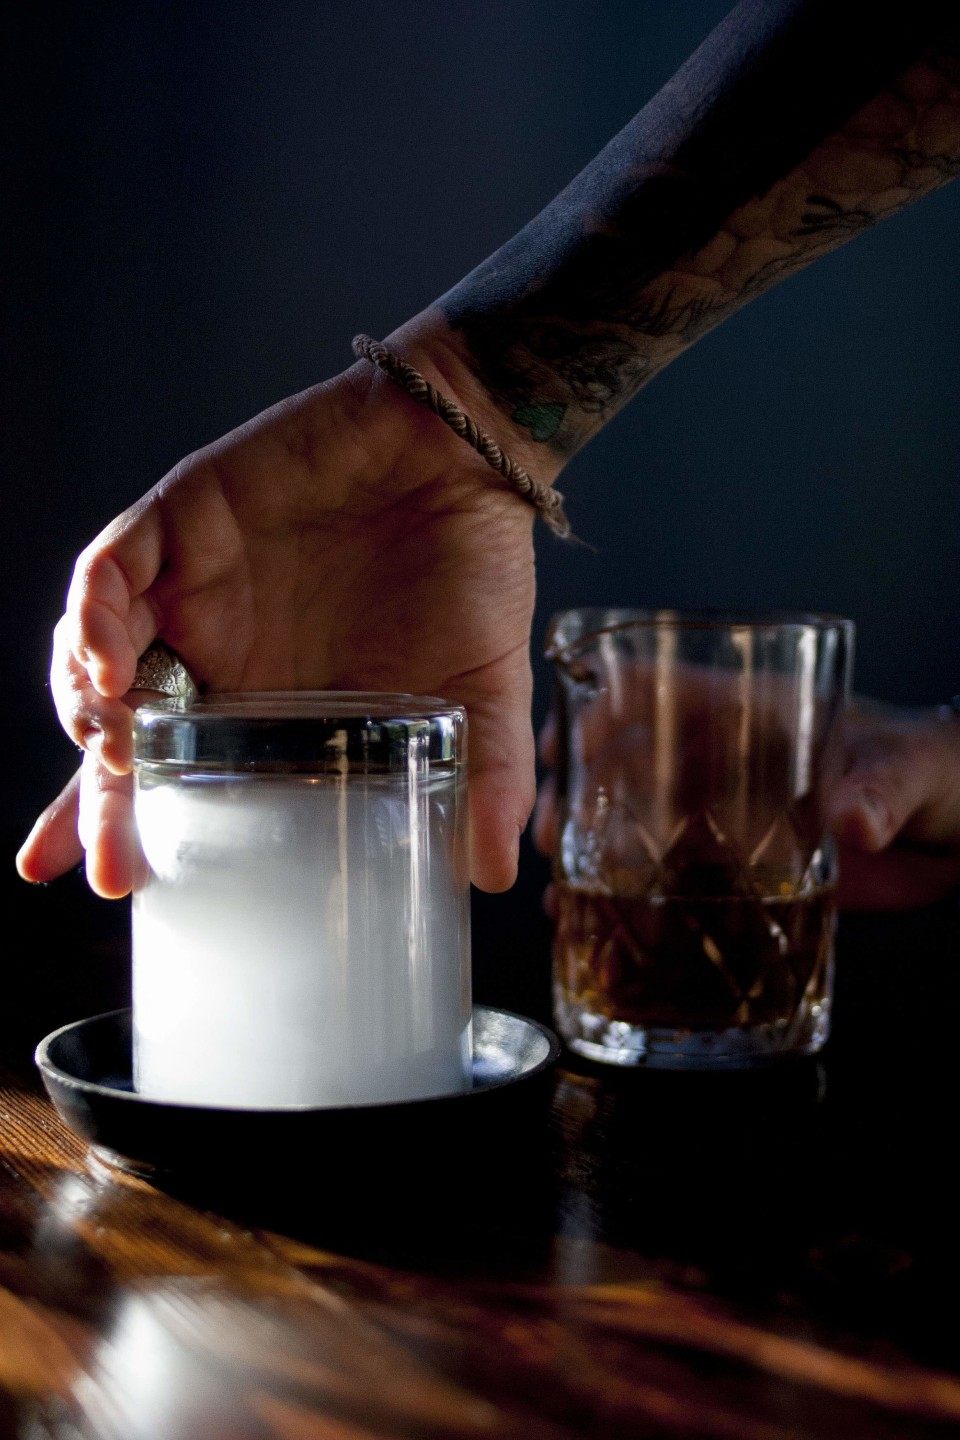 The Lawless cocktail blends Bourbon, malört, tobacco-infused bitters and sugar, served in a glass smoked with vanilla custard tobacco.